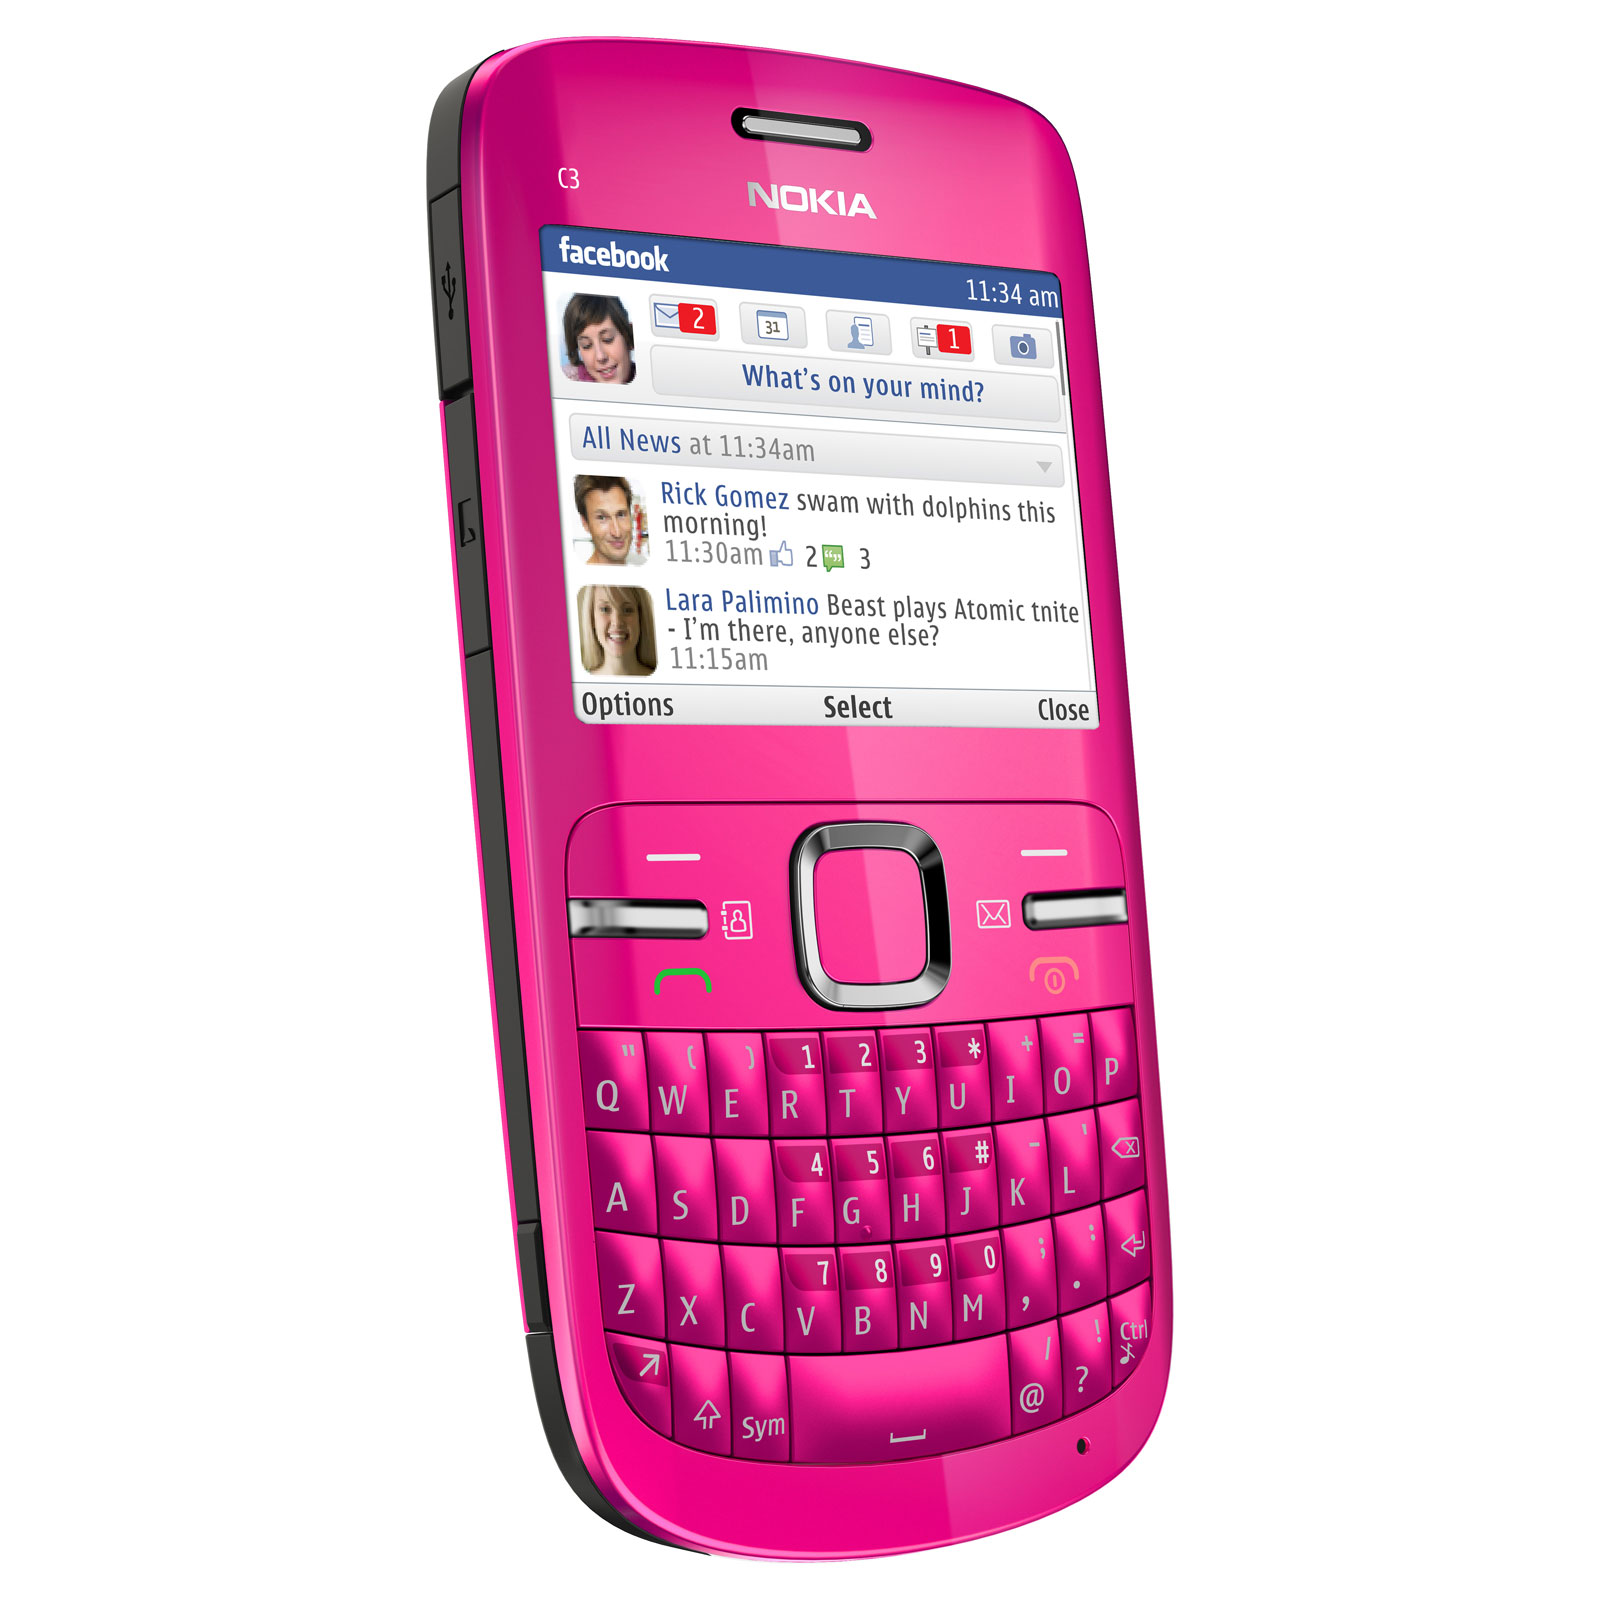 nokia c3 00 rose mobile smartphone nokia sur. Black Bedroom Furniture Sets. Home Design Ideas